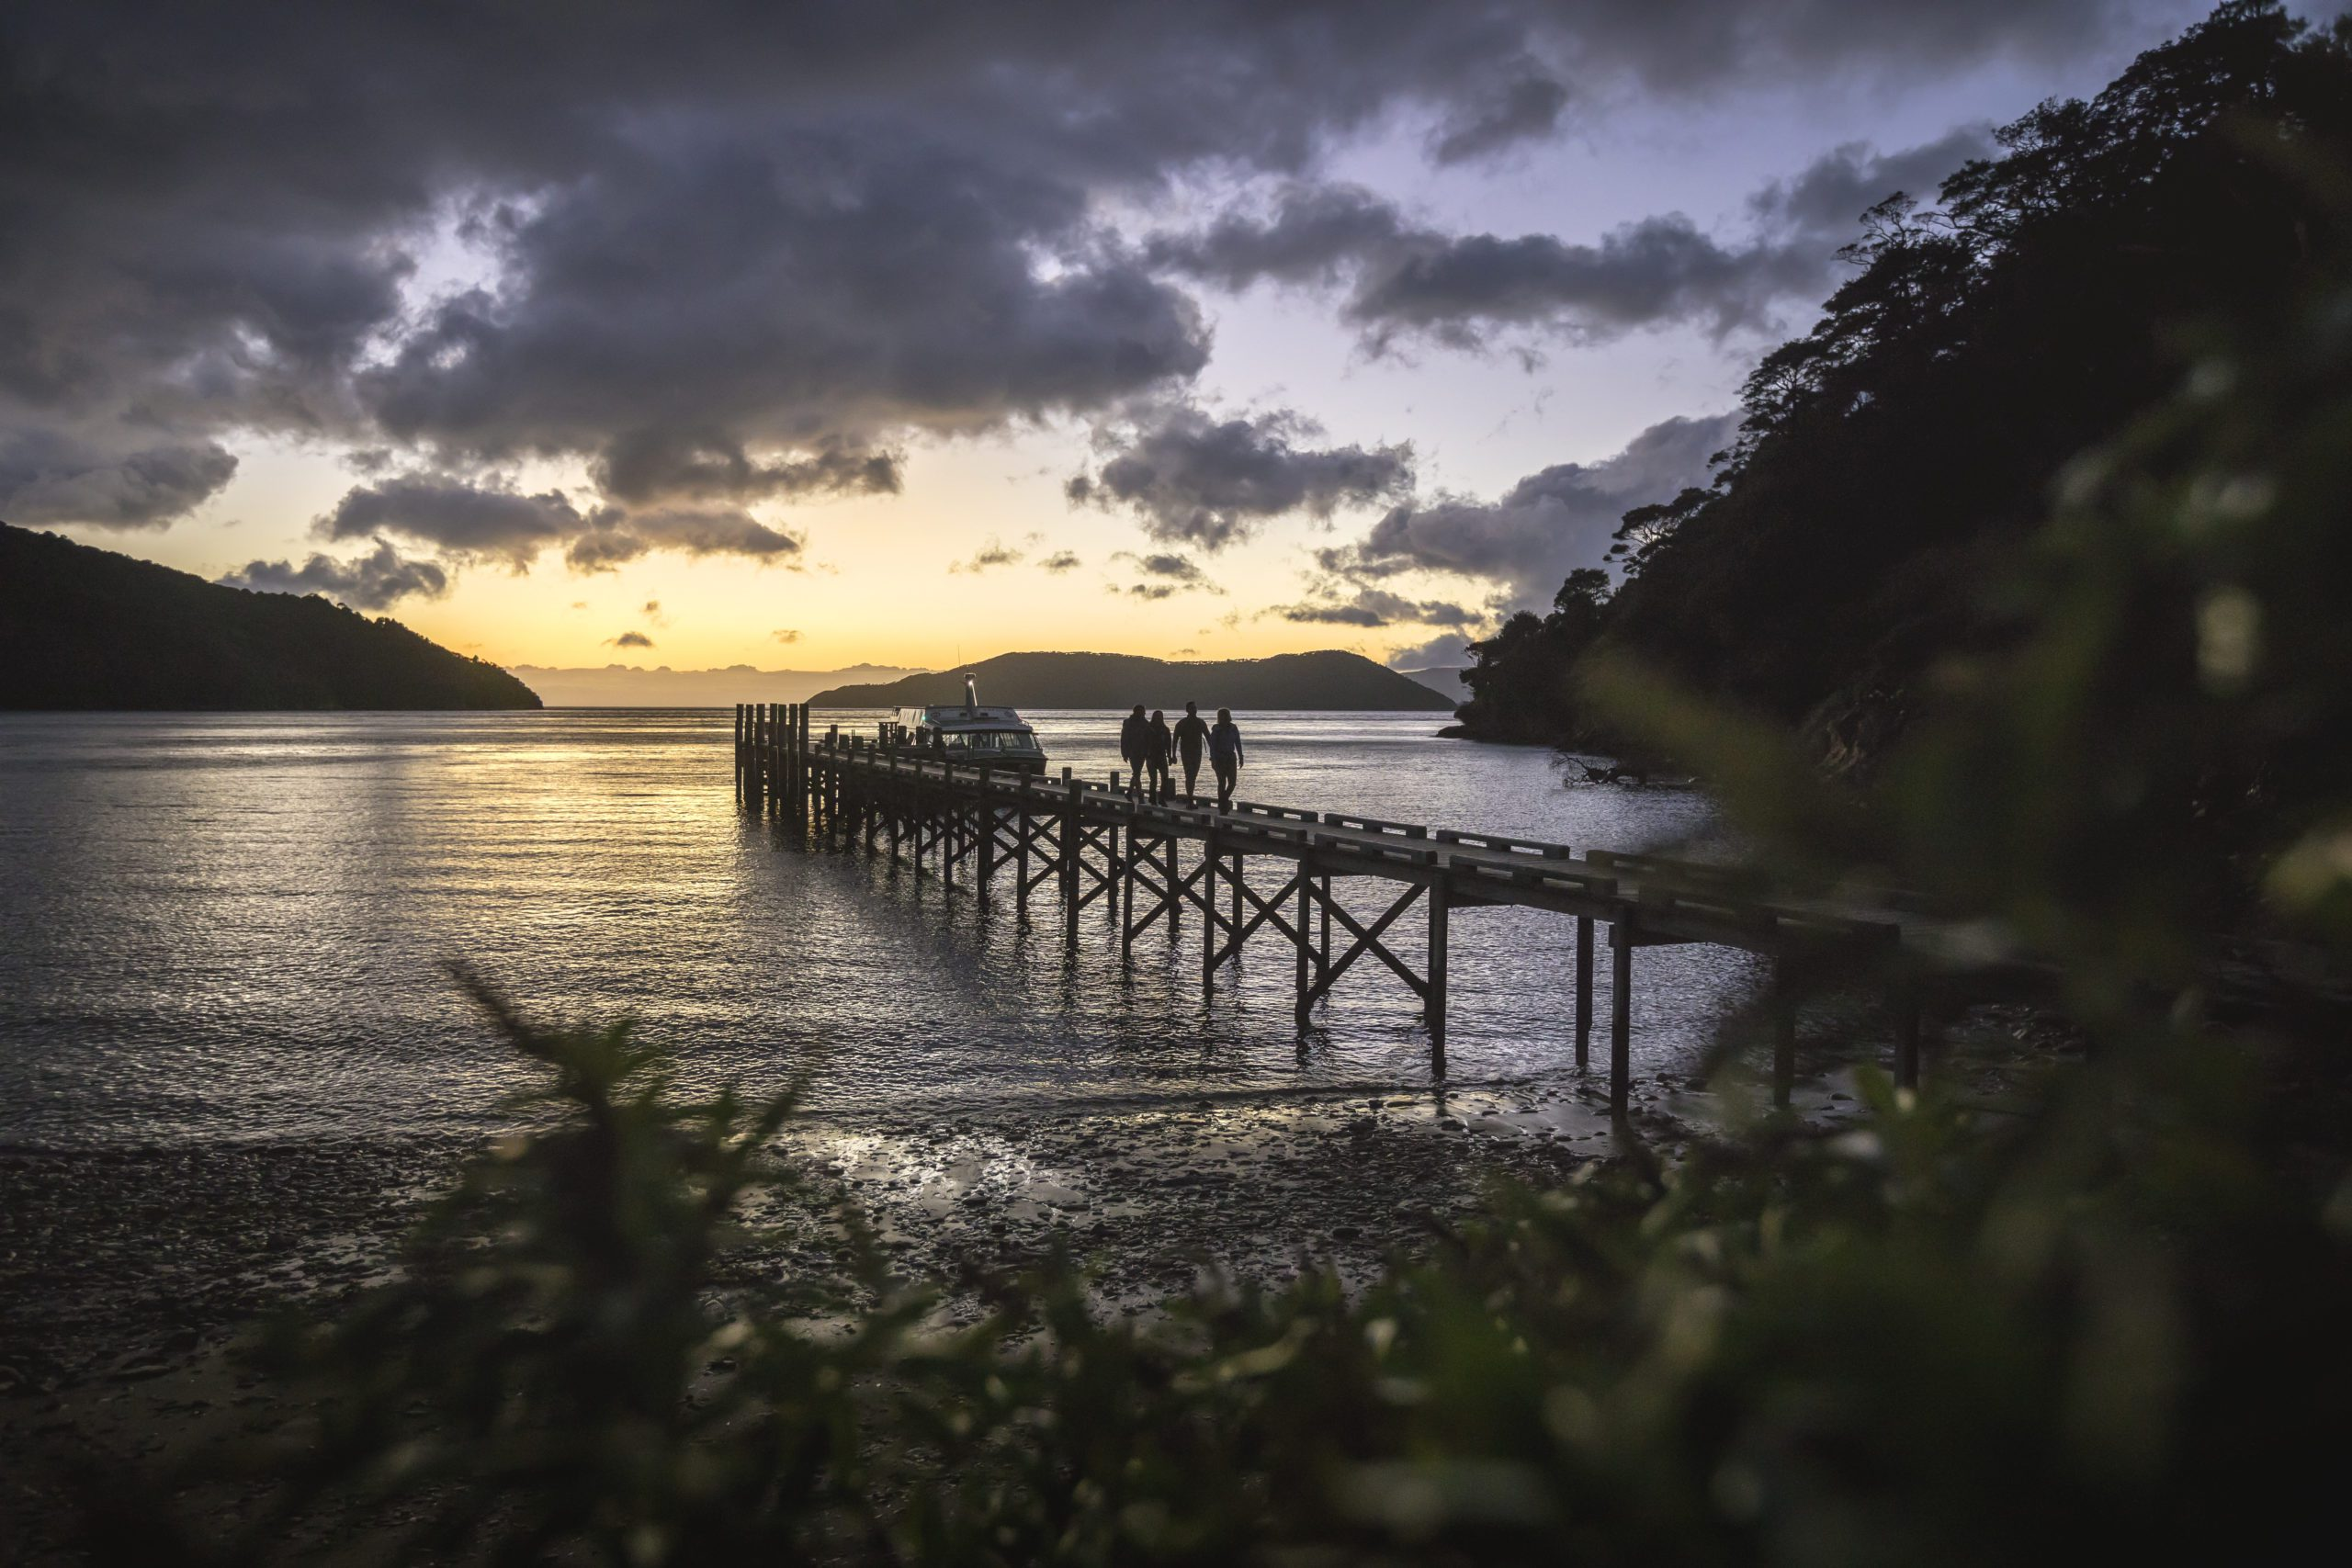 People walking along the jetty in Picton at sunset.